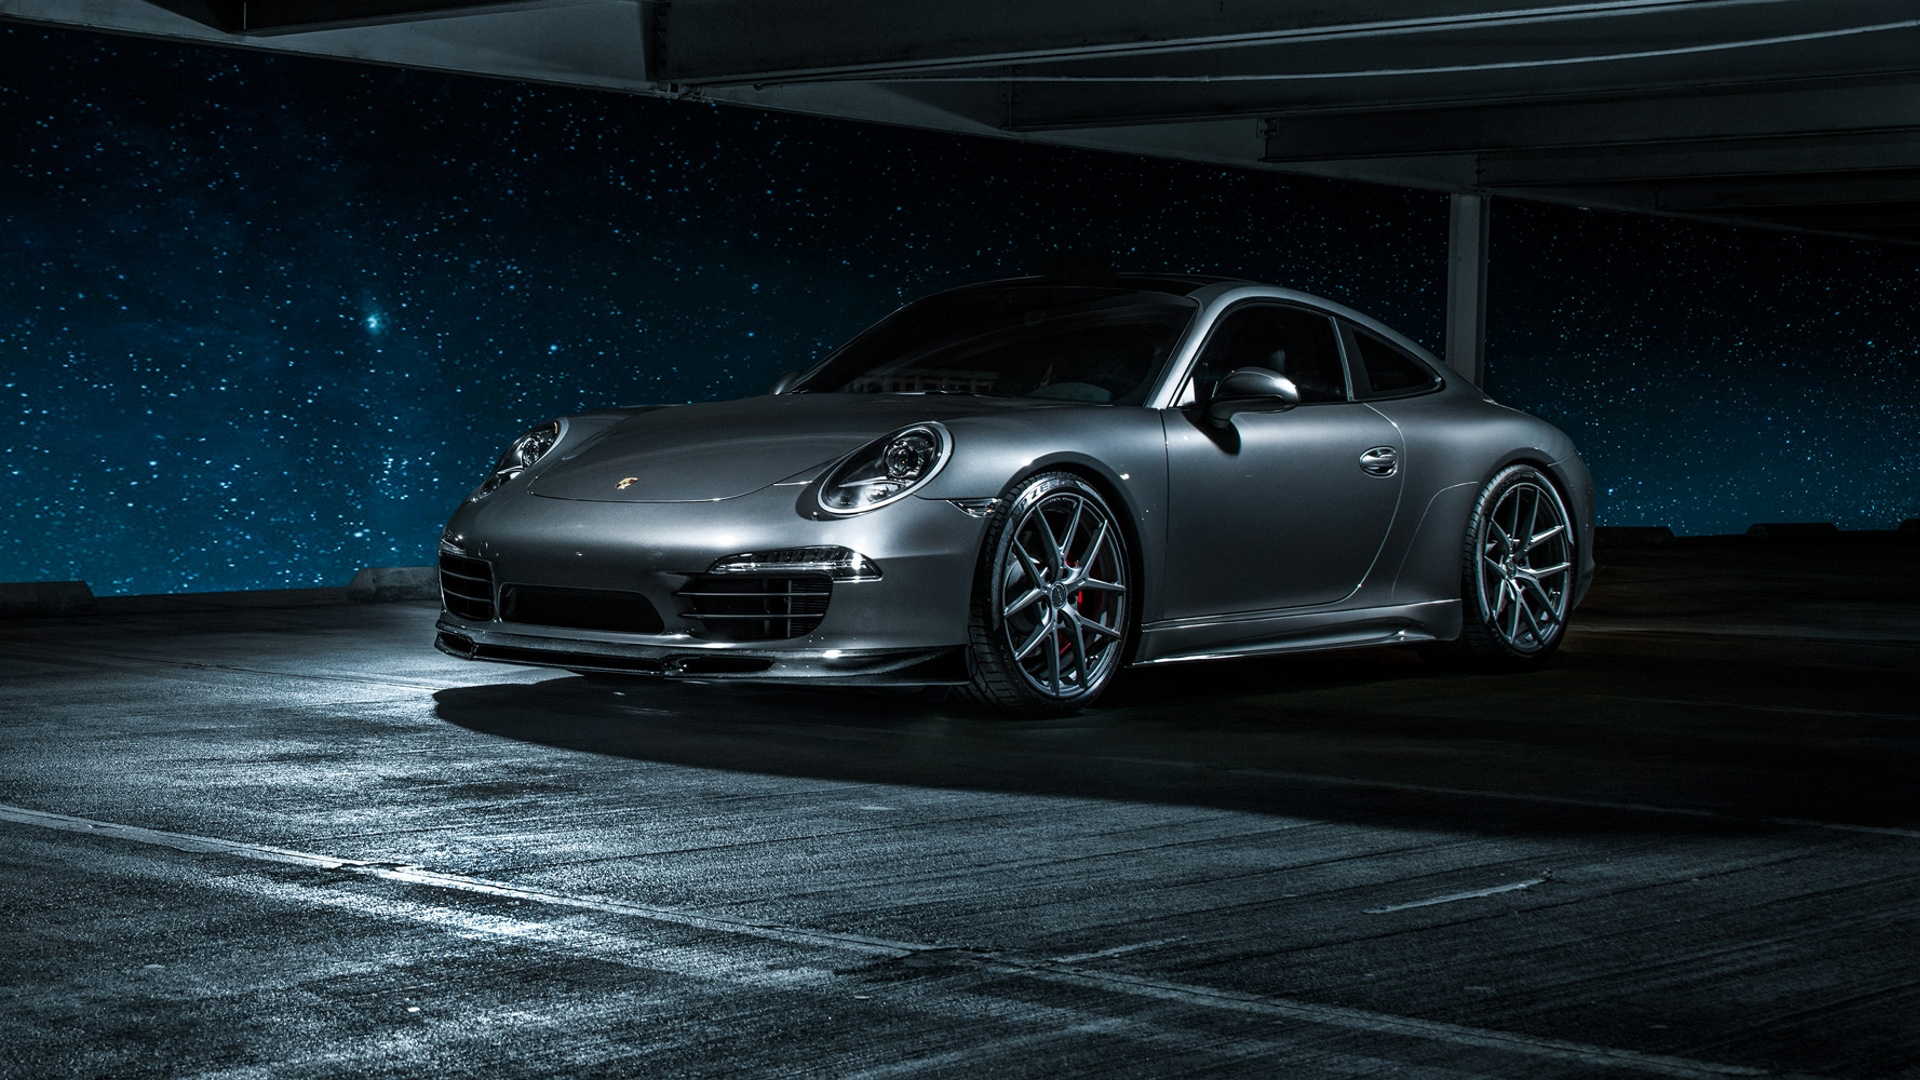 2015 porsche 911 carrera 4s wallpaper hd car wallpapers. Black Bedroom Furniture Sets. Home Design Ideas